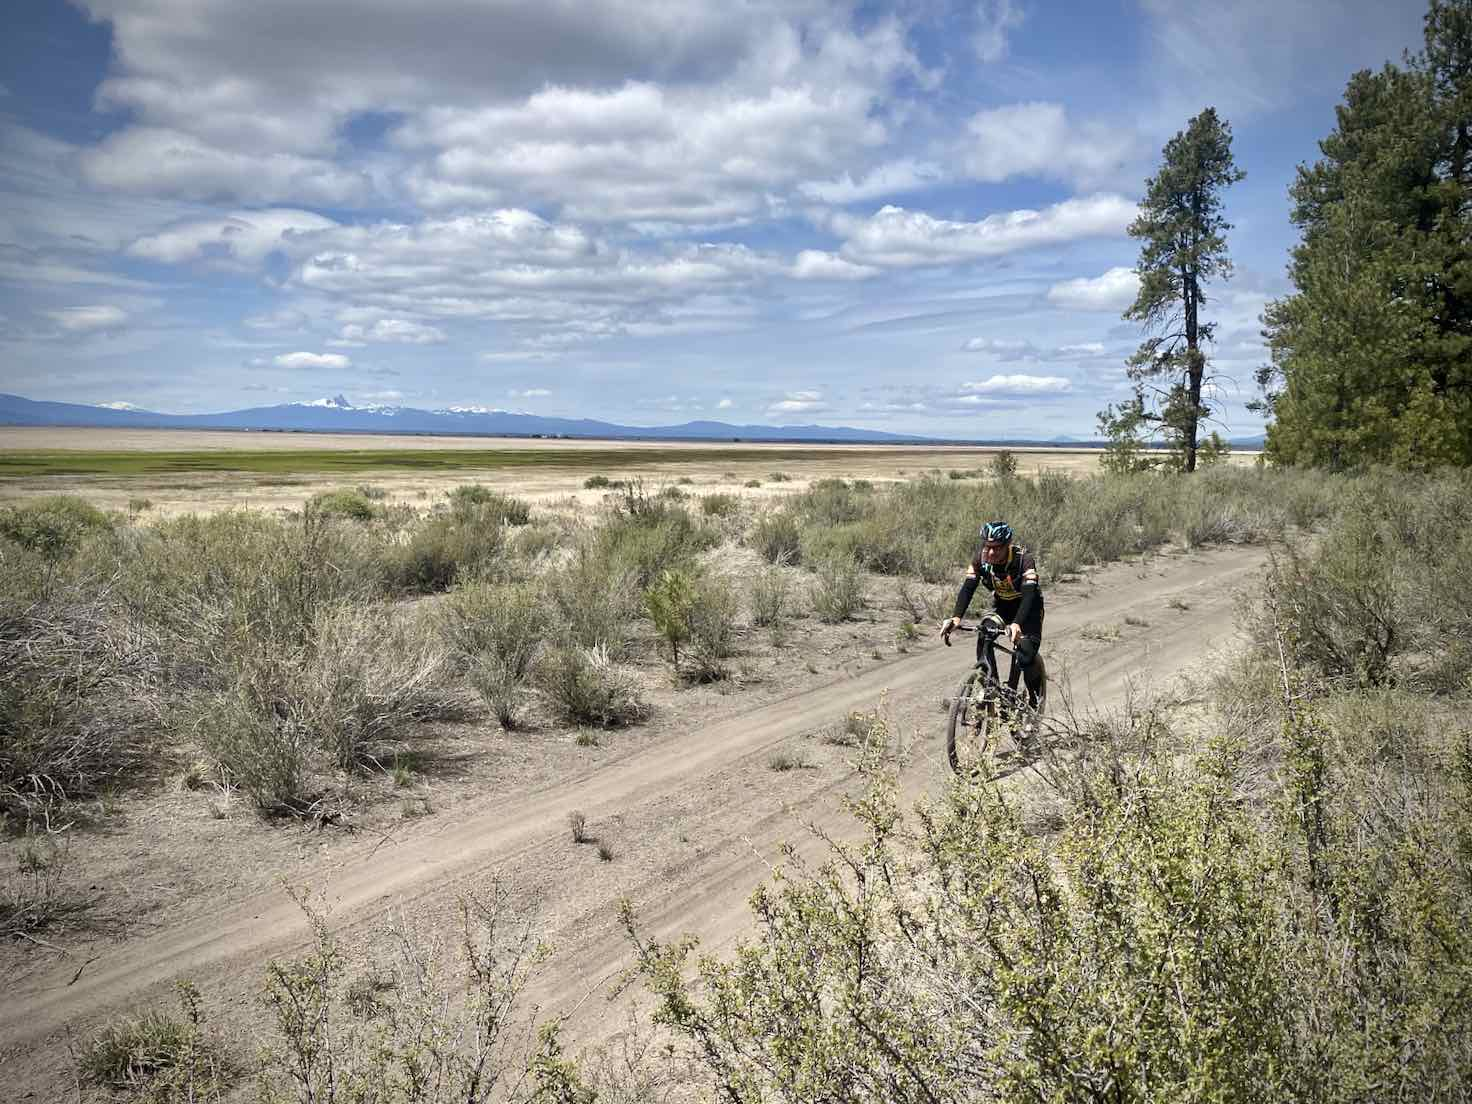 A view of cyclist riding dirt road just west of the Klamath Marsh.